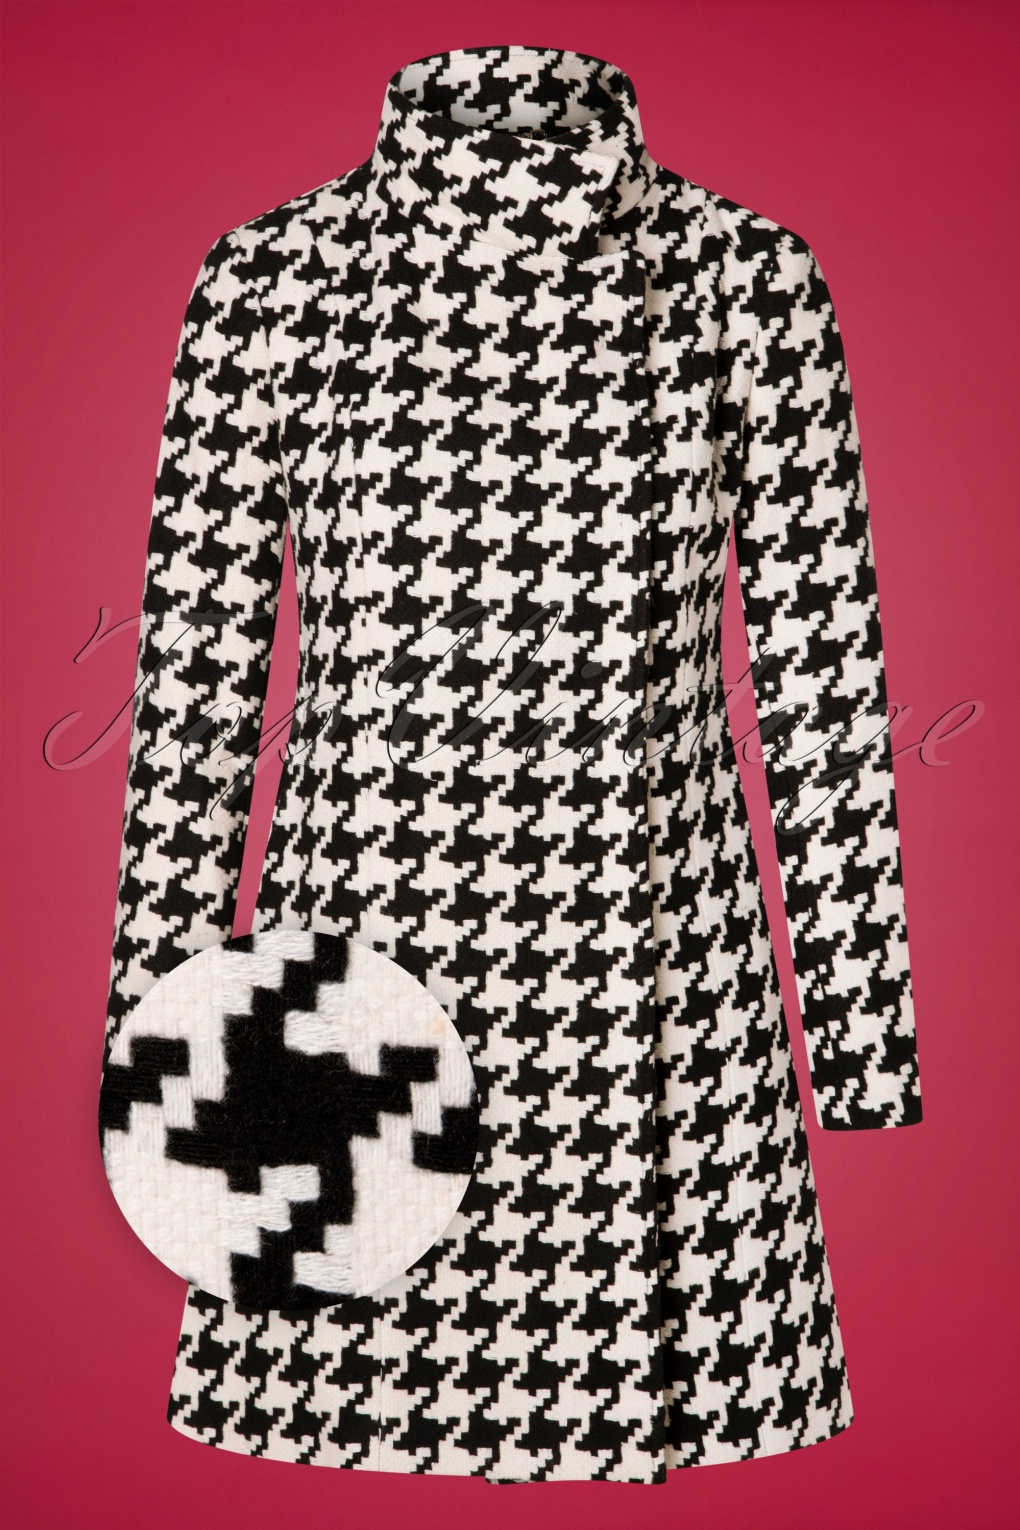 Vintage Coats & Jackets | Retro Coats and Jackets 60s Jackie Coat in Black and White Houndstooth £127.59 AT vintagedancer.com